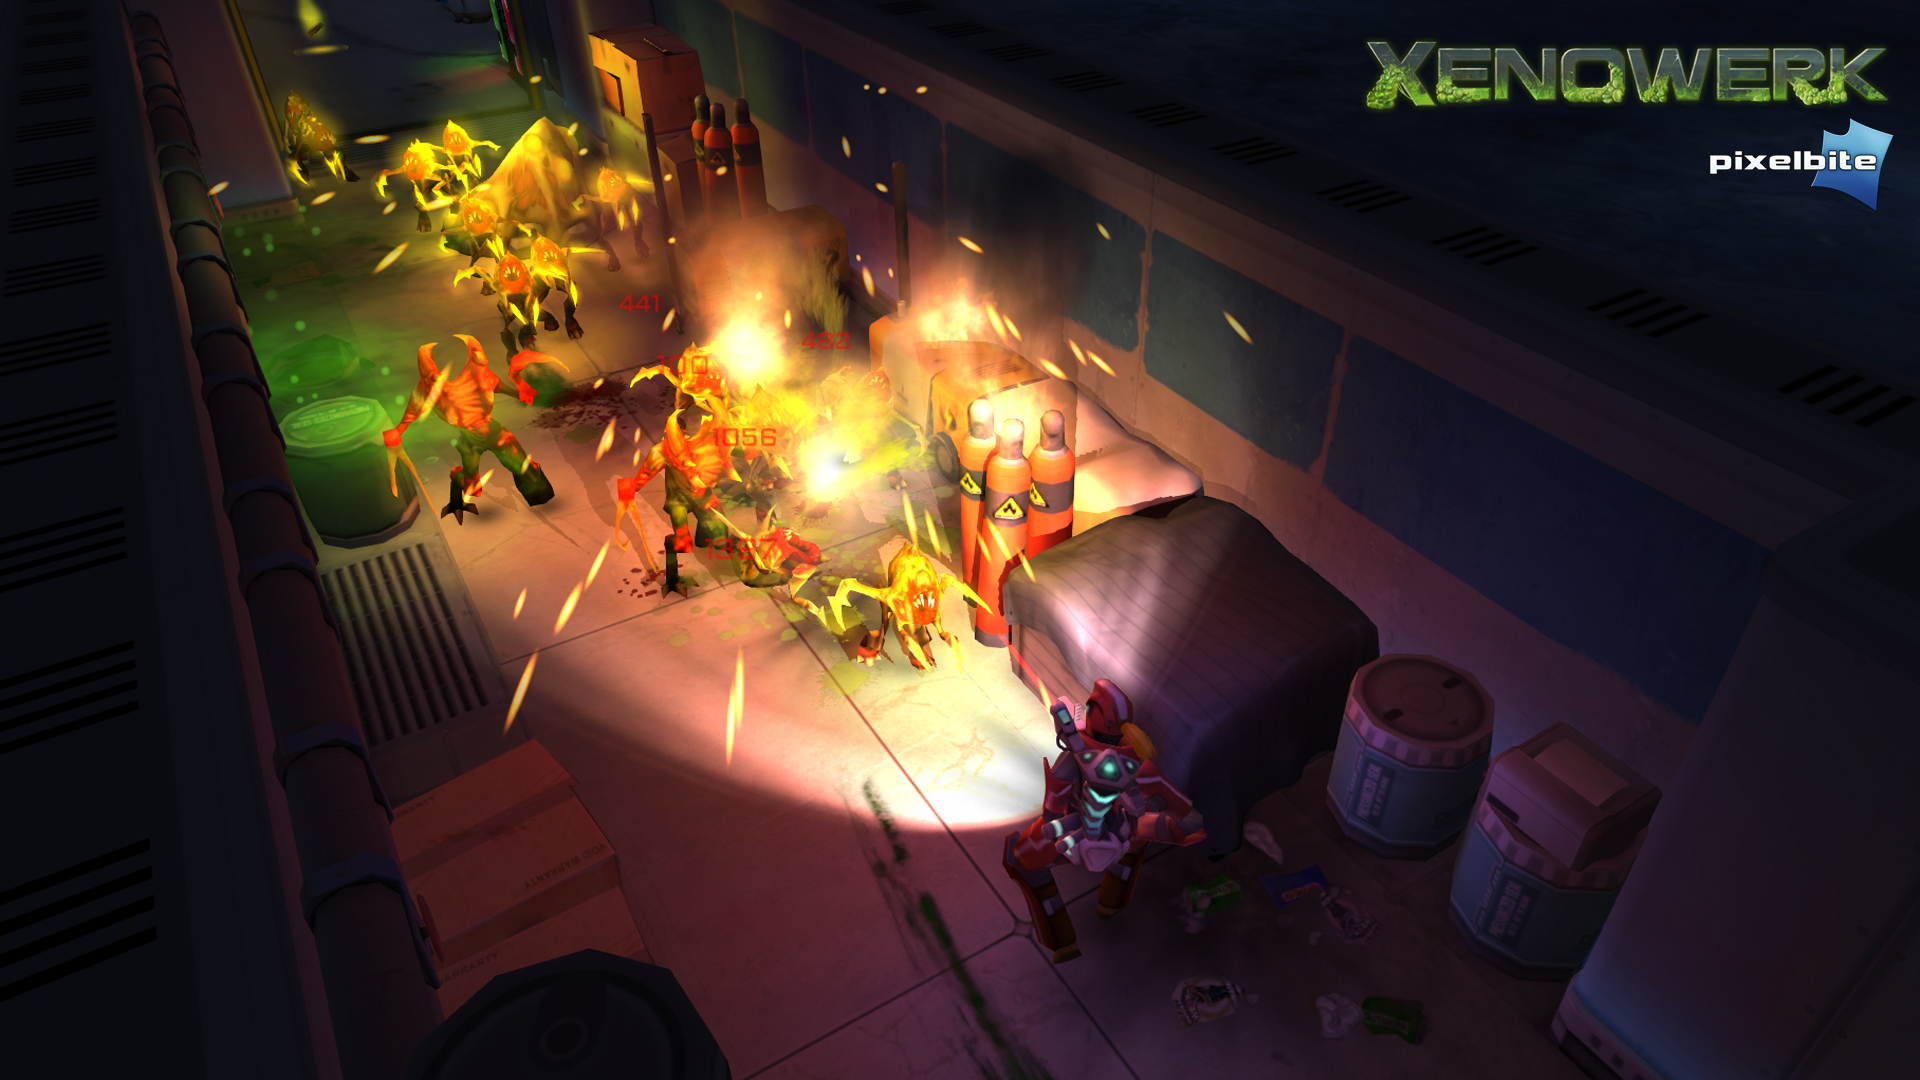 Bronze Award-winning shooter Xenowerk updated with ten new missions, weapons and more